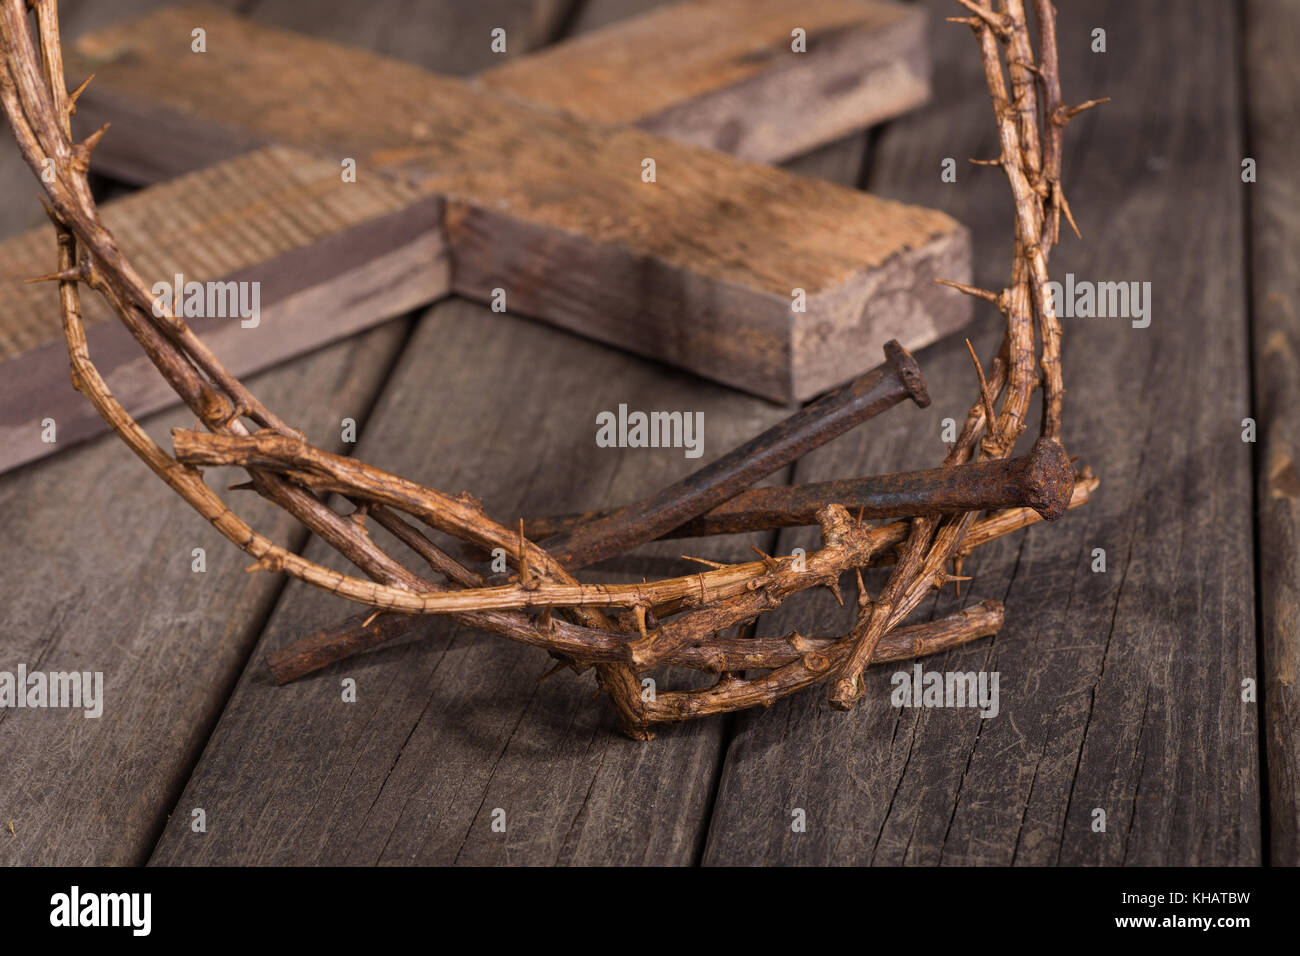 Crown Of Thorns And Nails Closeup And Cross In Background On A Wood Stock Photo Alamy